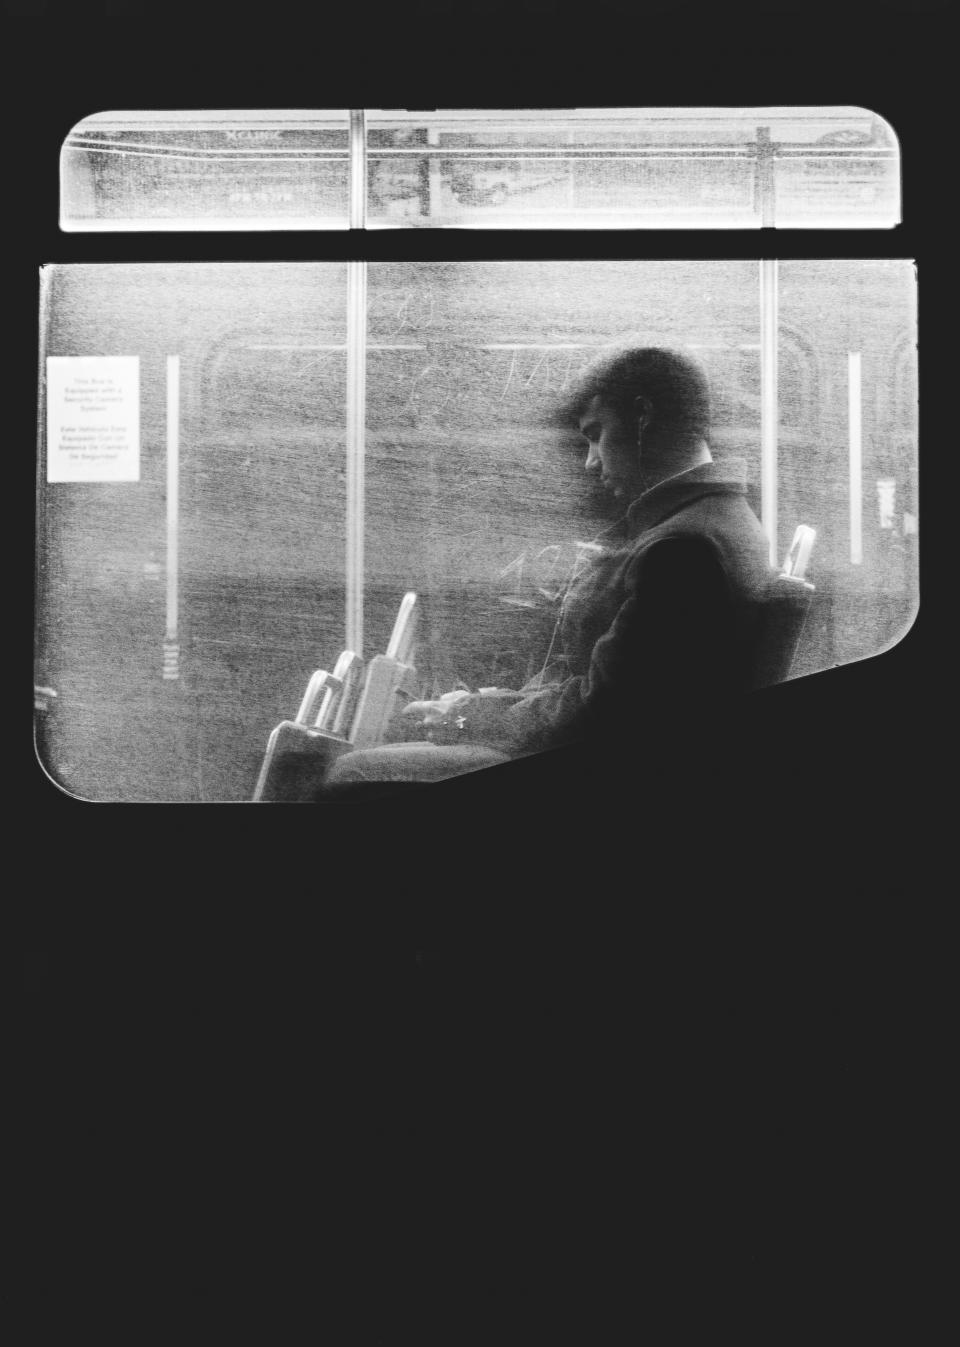 black and white, people, man, guy, sitting, alone, sad, travel, train, transportation